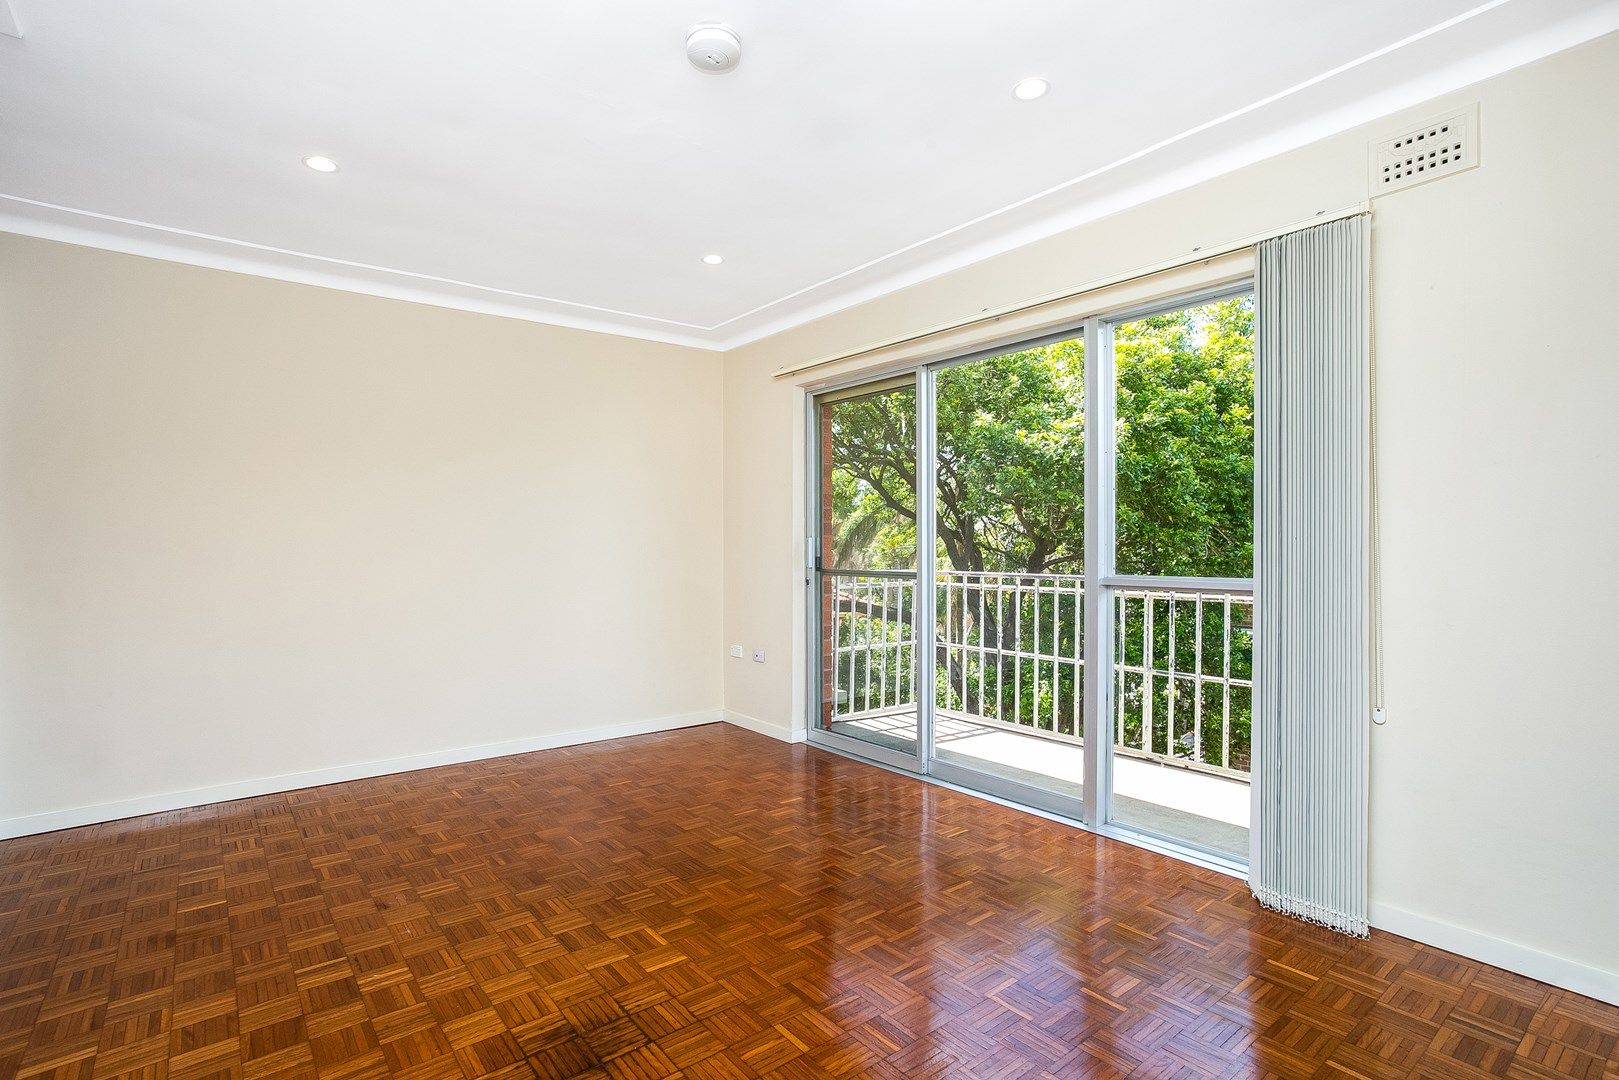 3/286 Condamine Street, Manly Vale NSW 2093, Image 0